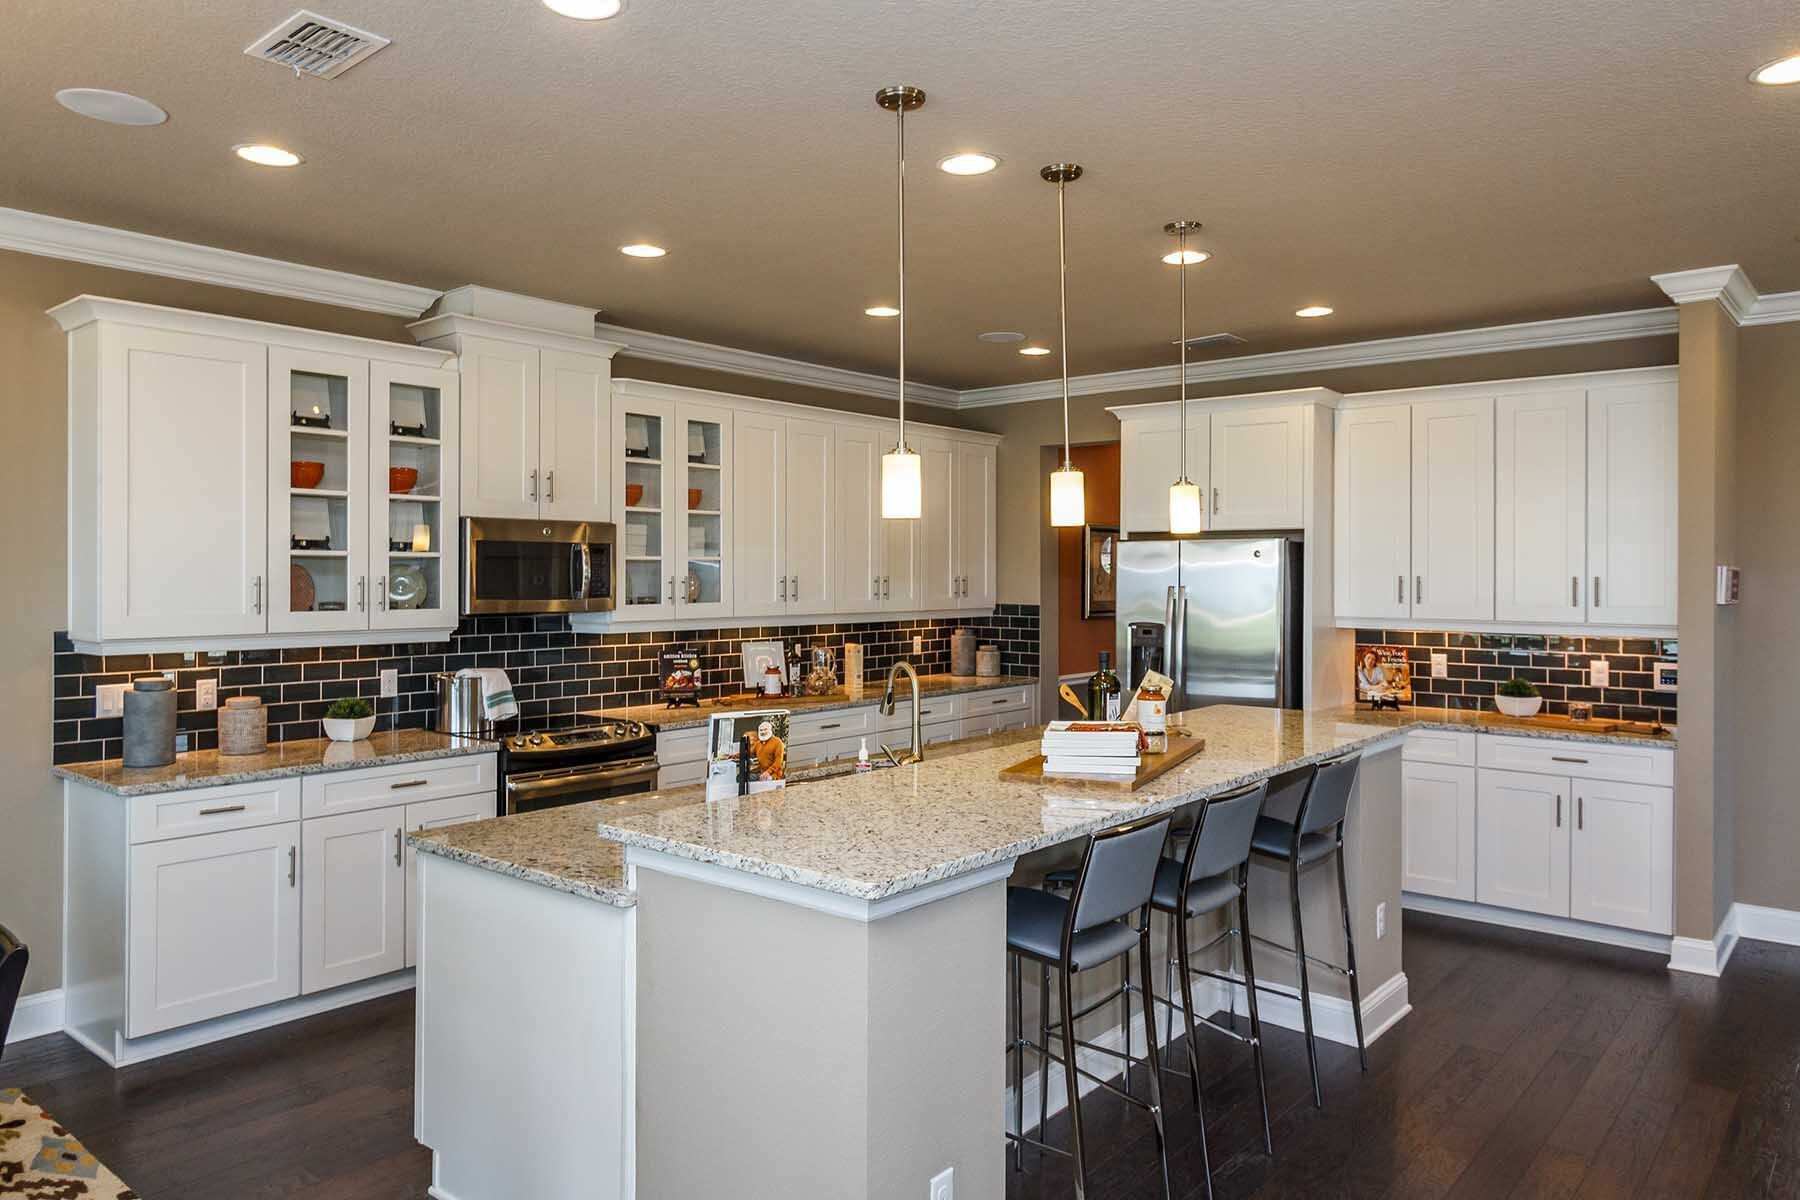 Kitchen featured in the Grandview Fl By M/I Homes in Orlando, FL